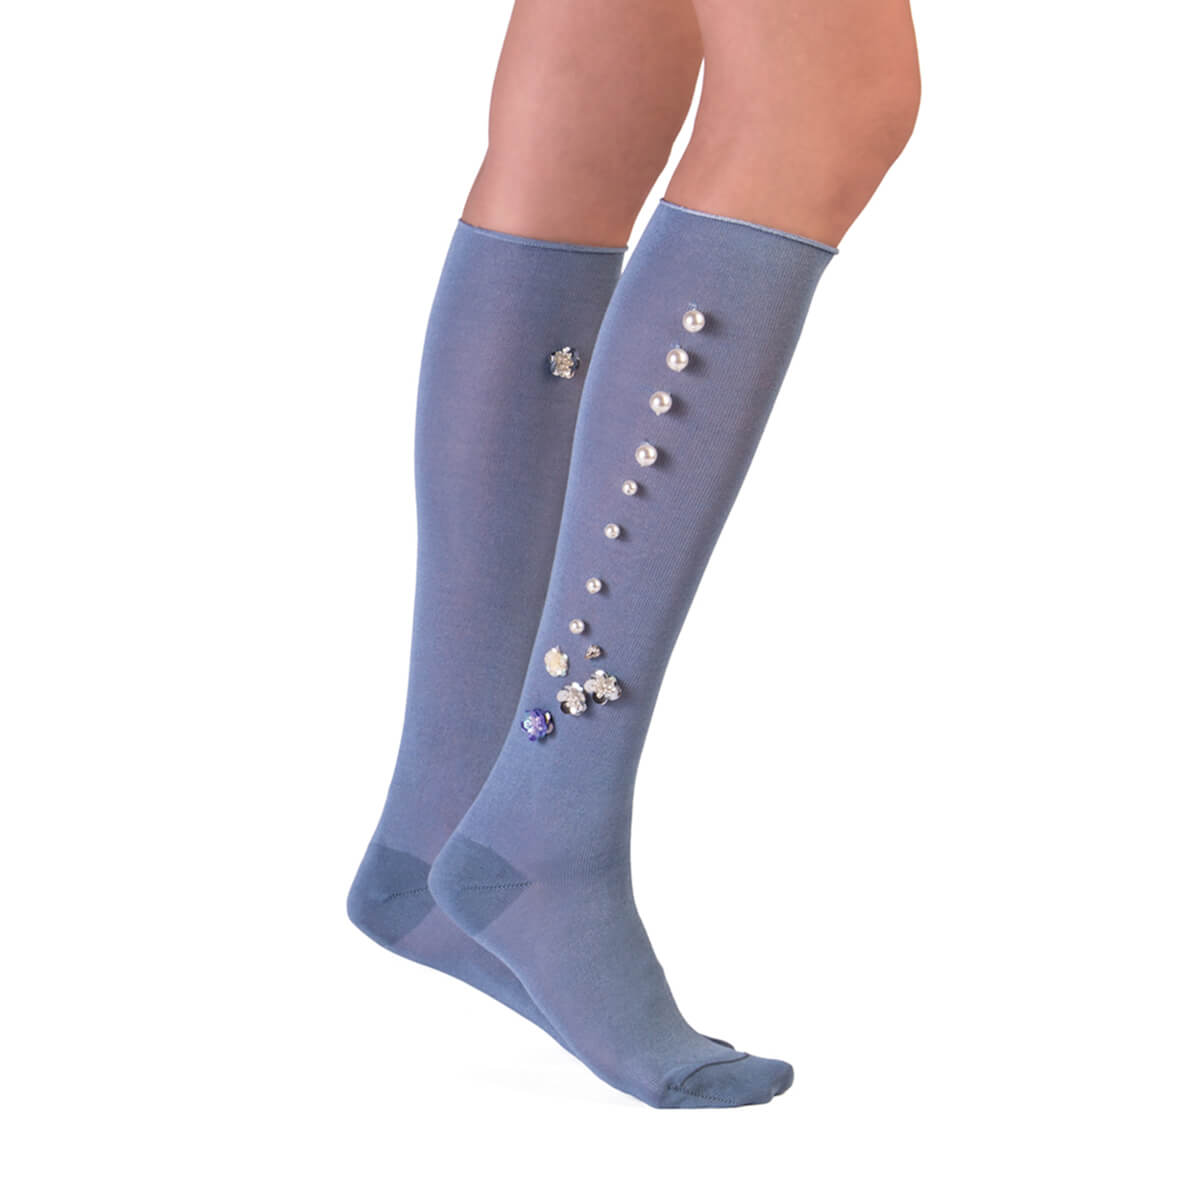 Jeweled Knee Socks - Sugar Paper